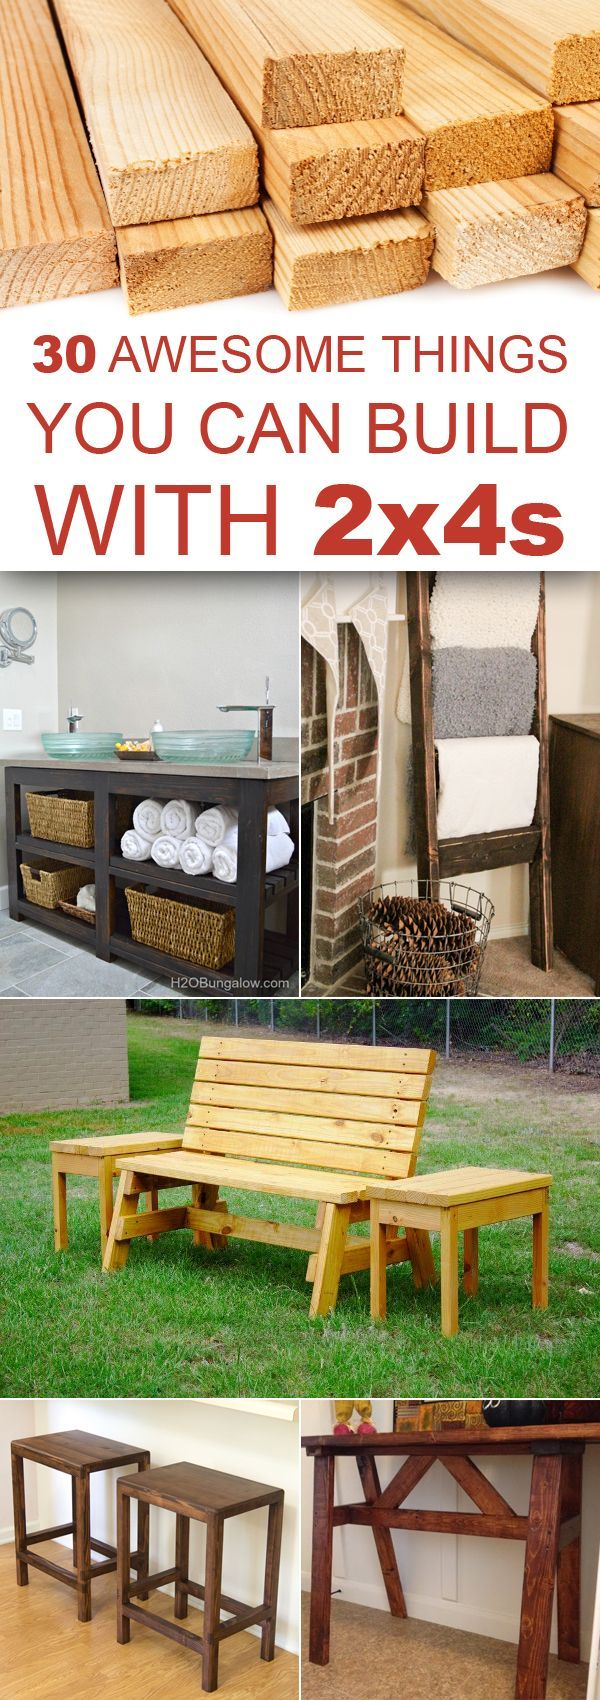 30 Awesome Things You Can Build With 2x4s                                                                                                                                                                                 More